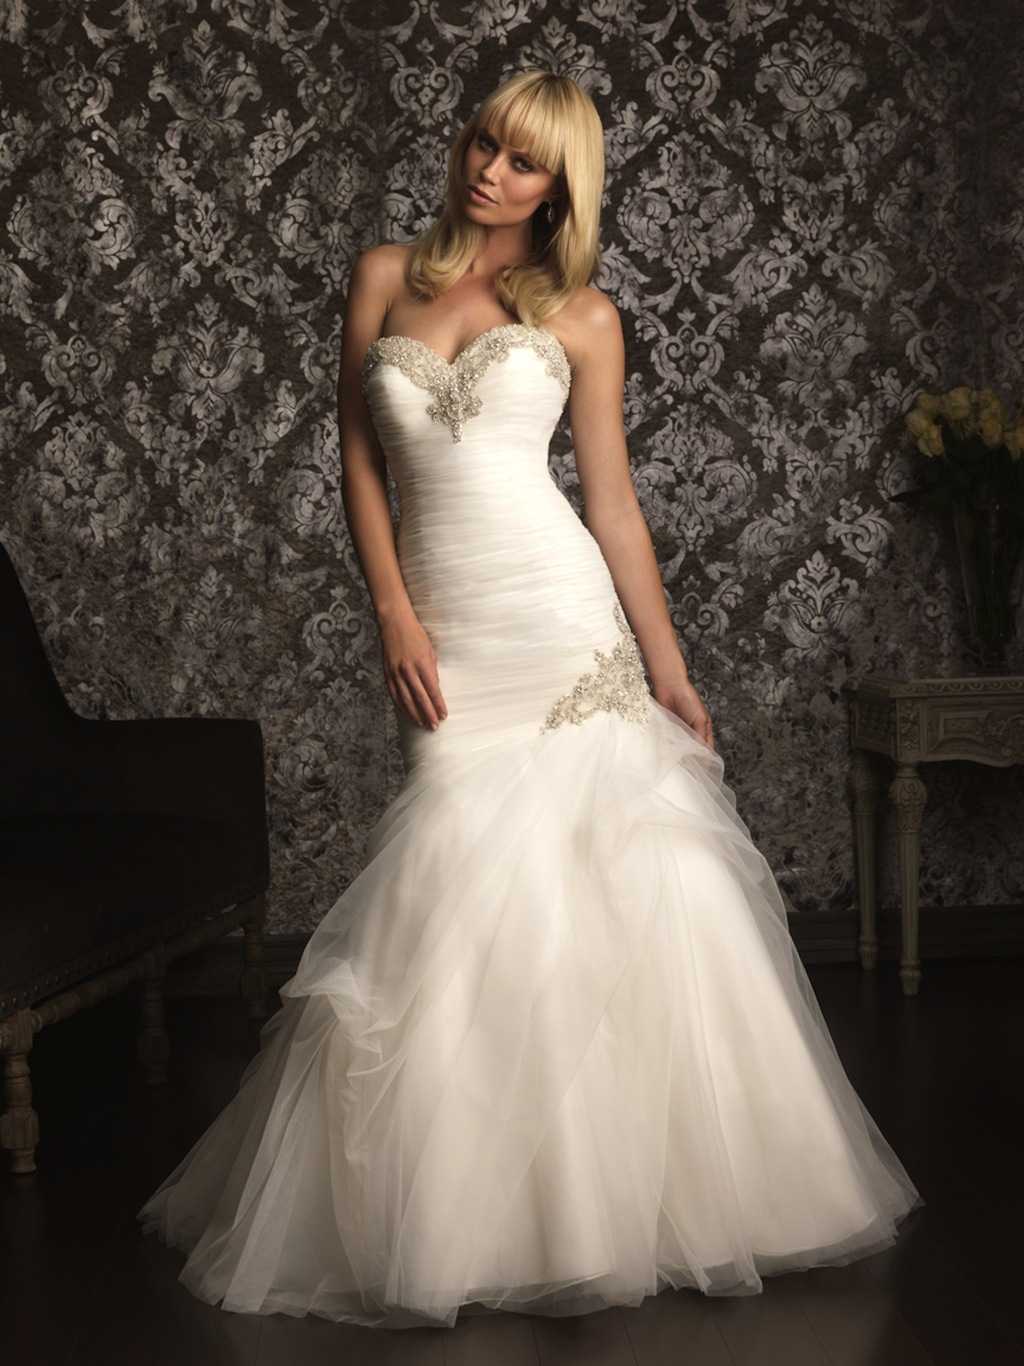 2013-allure-bridals-wedding-dress-bridal-gown-allure-collection-2013-9002f-2.full